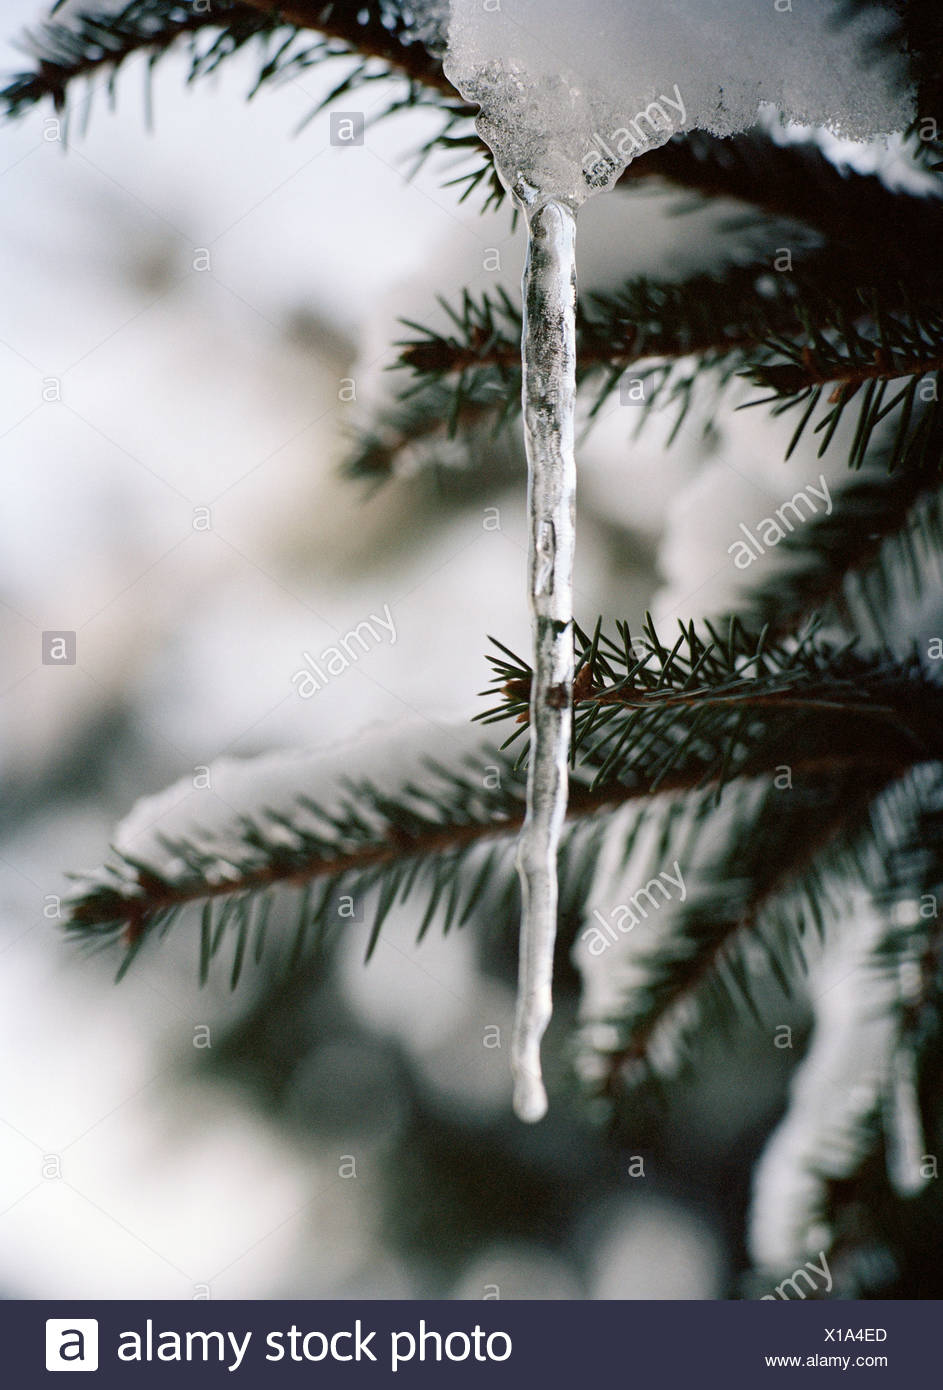 An icicle on a branch Sweden - Stock Image